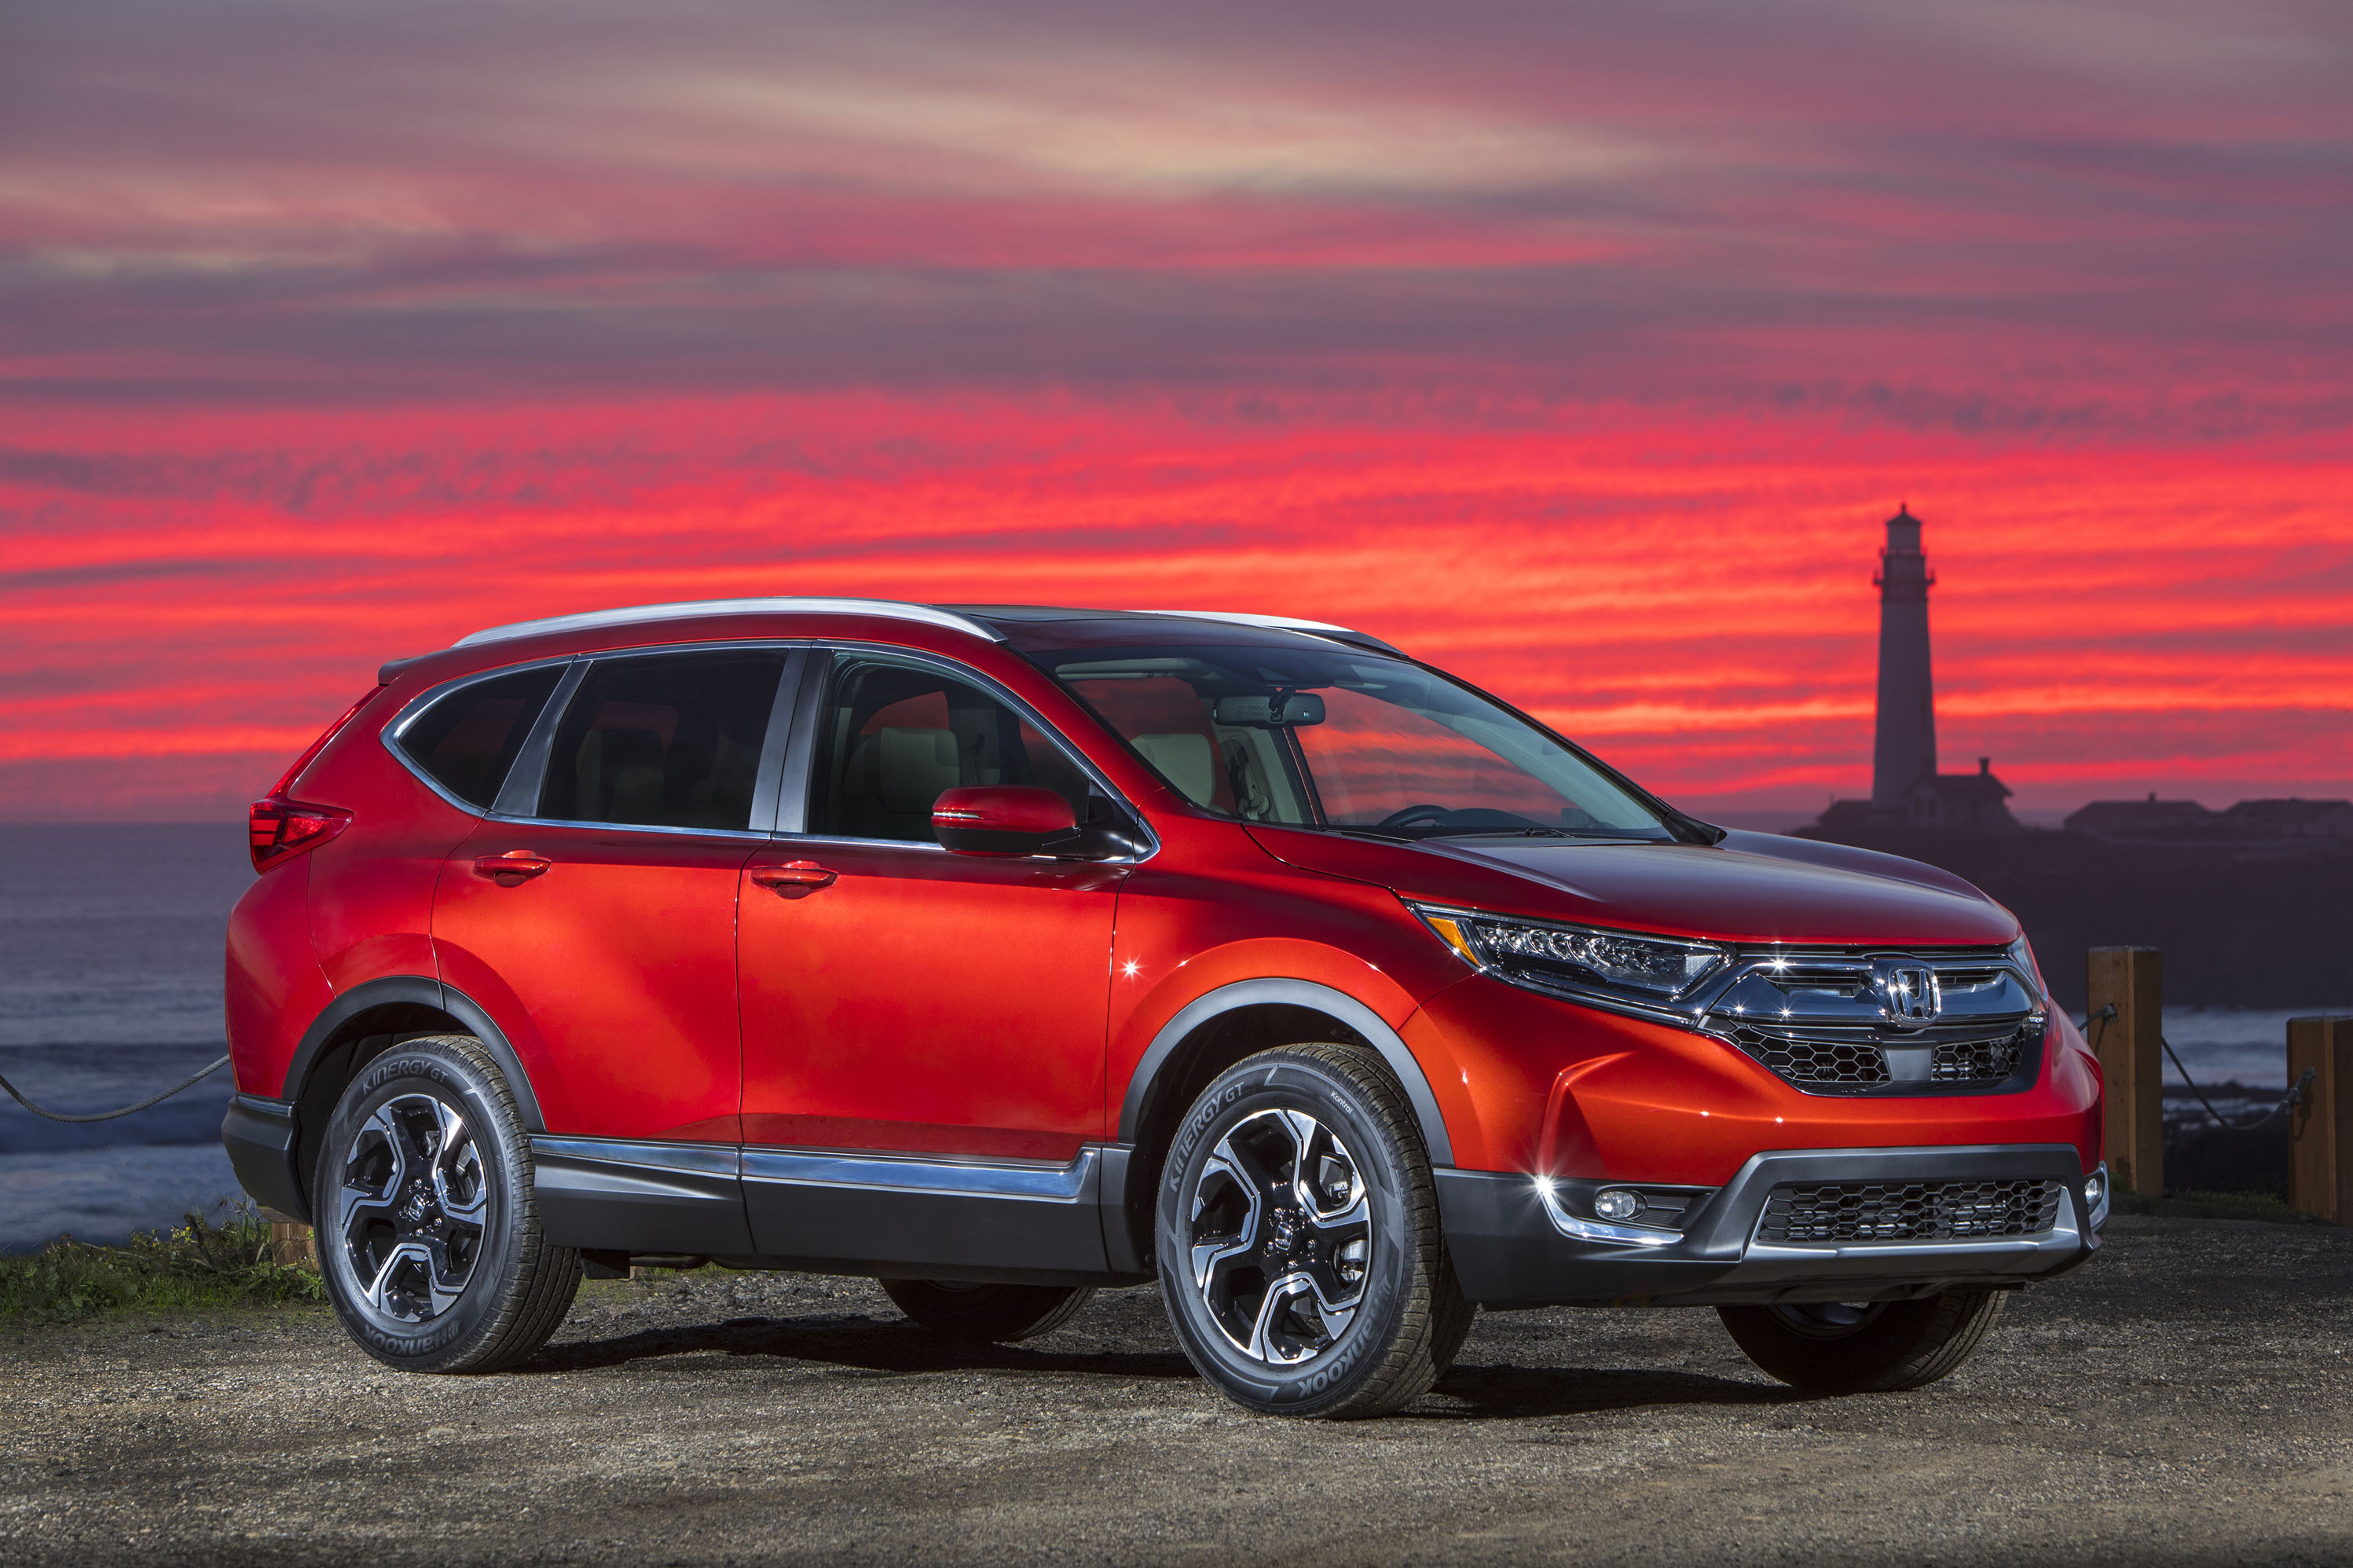 Honda Mrv 2018: 5 Things I Learned From The 2018 Honda CR-V, America's